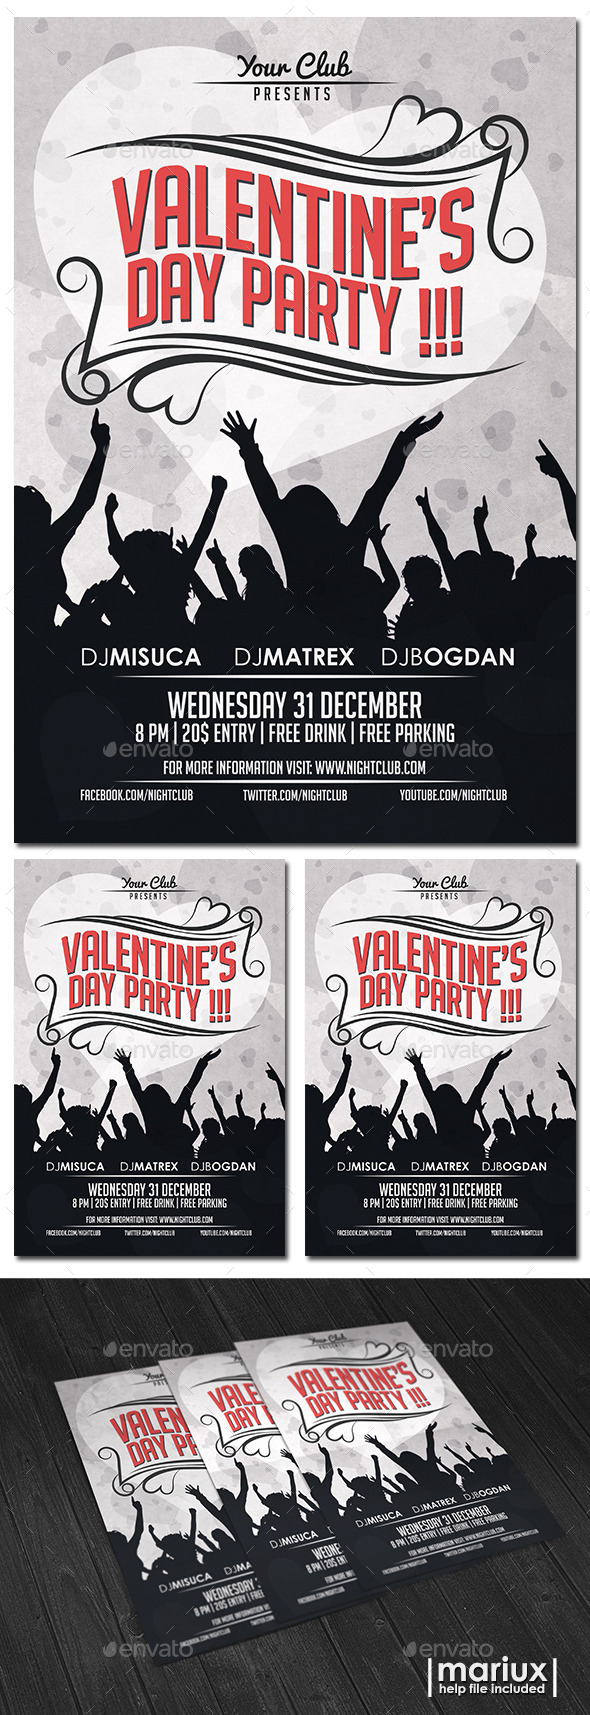 GraphicRiver Valentine s Day Party Flyer 9950763